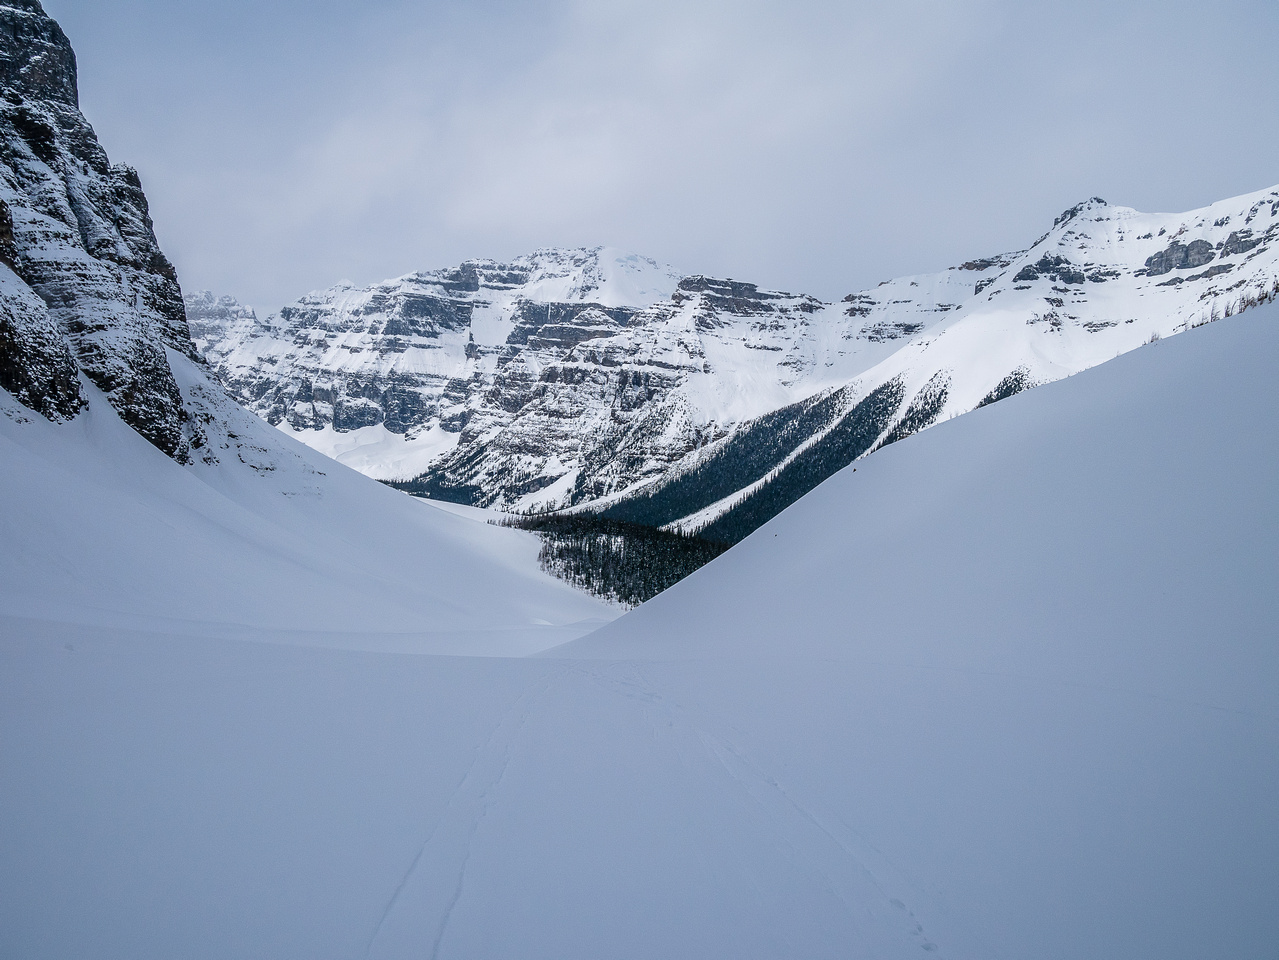 Skiing down was nice and quick - even with a typical Rockies spring crusty snow pack.